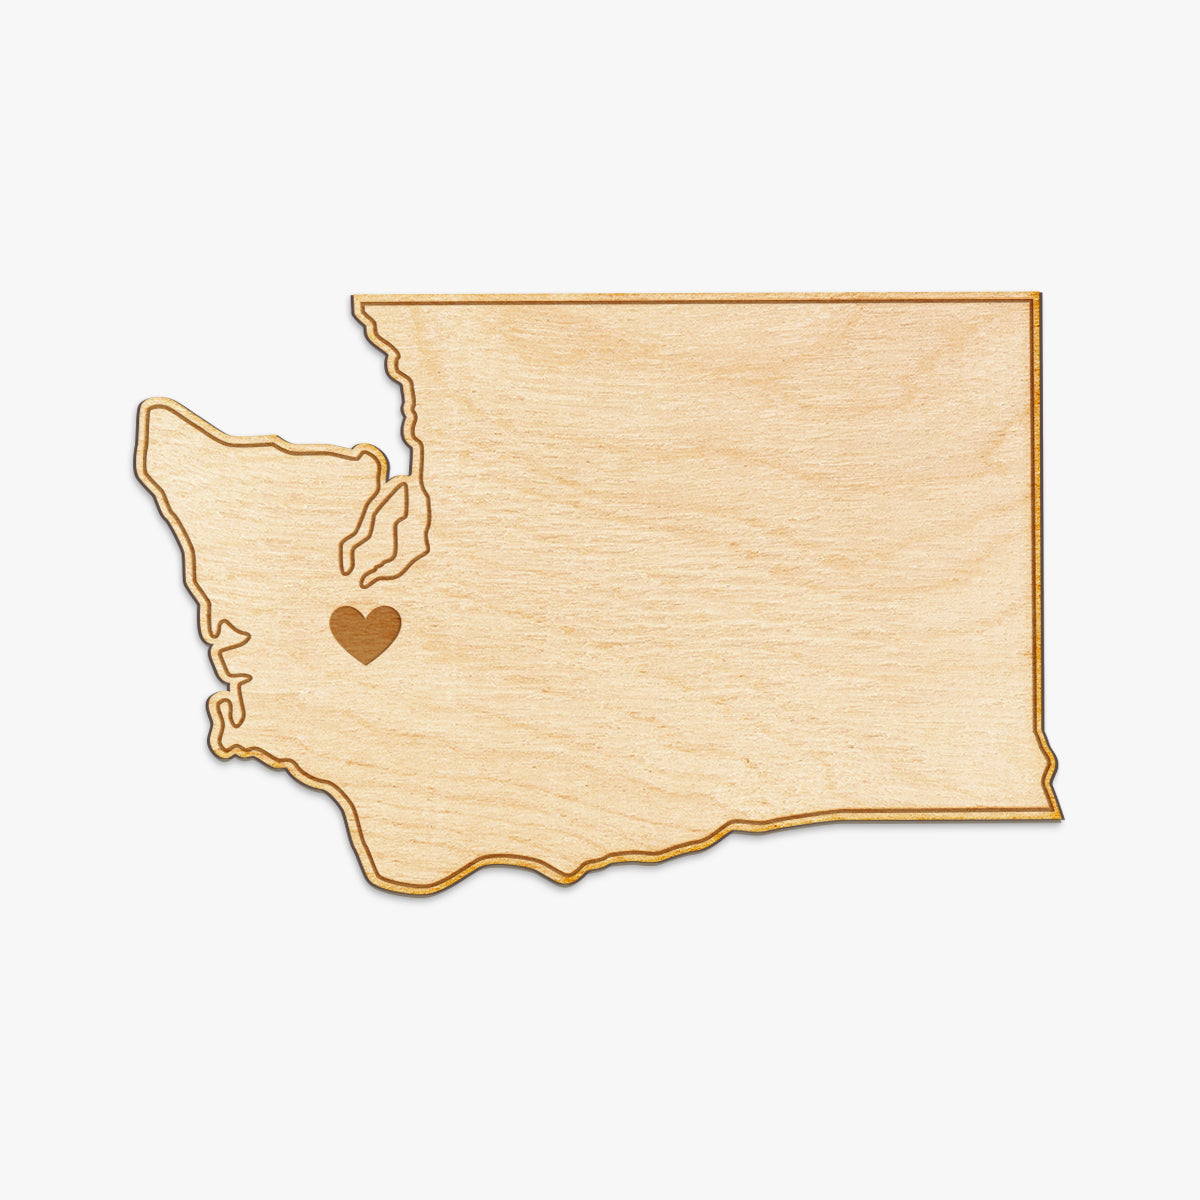 Washington Cut Sign With Custom Engraved Heart Placement